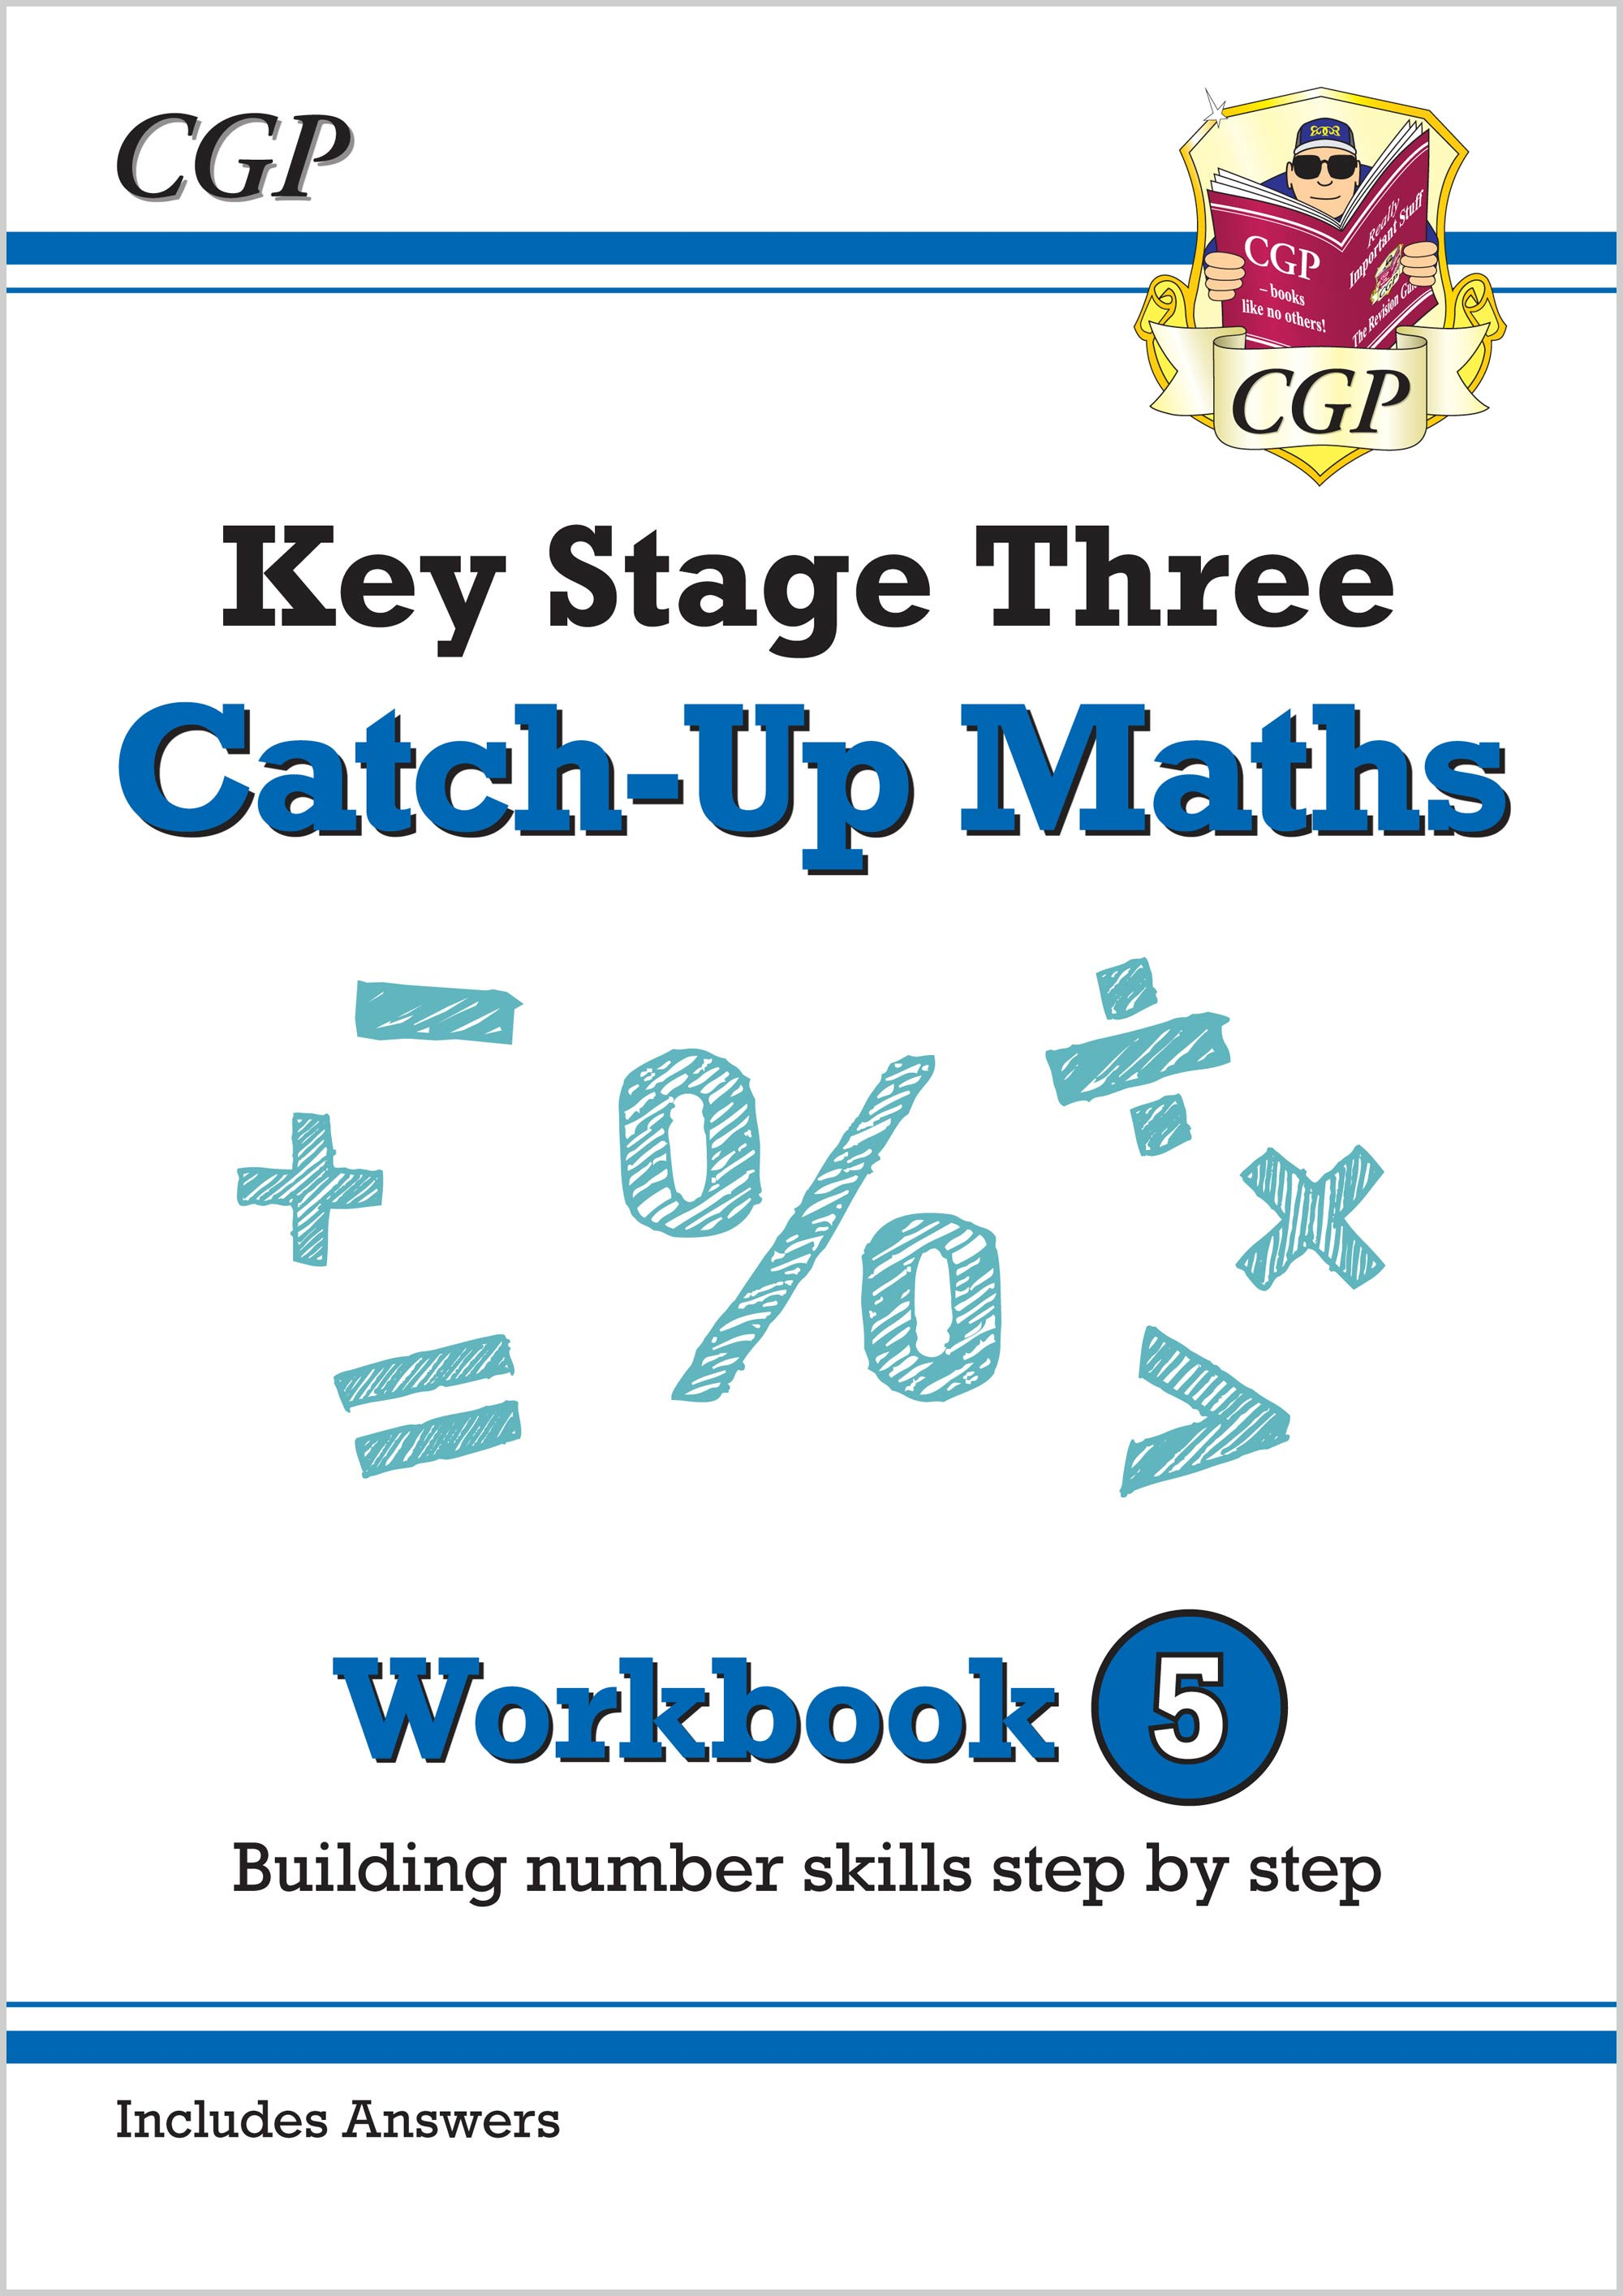 MBNW531 - New KS3 Maths Catch-Up Workbook 5 (with Answers)